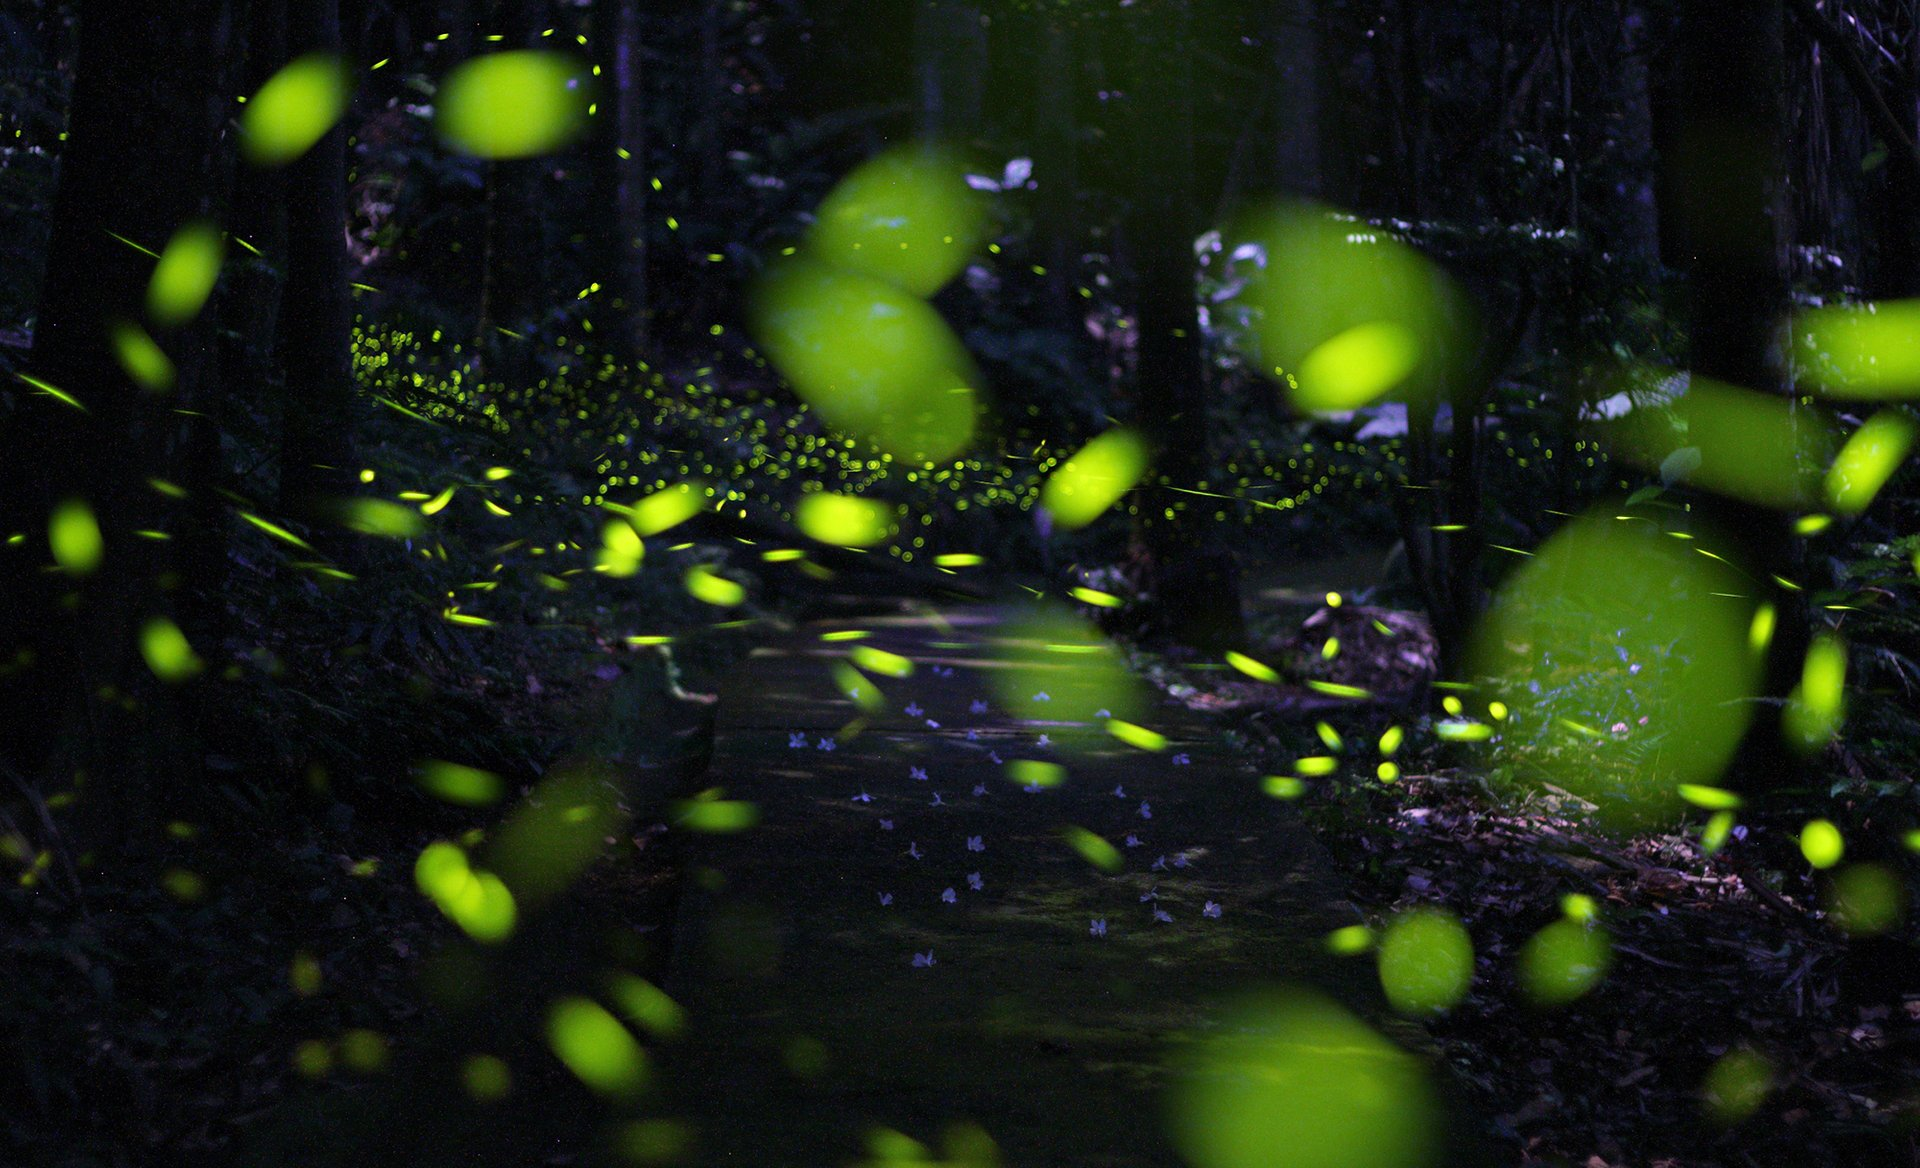 Firefly Season in Taiwan 2020 - Best Time